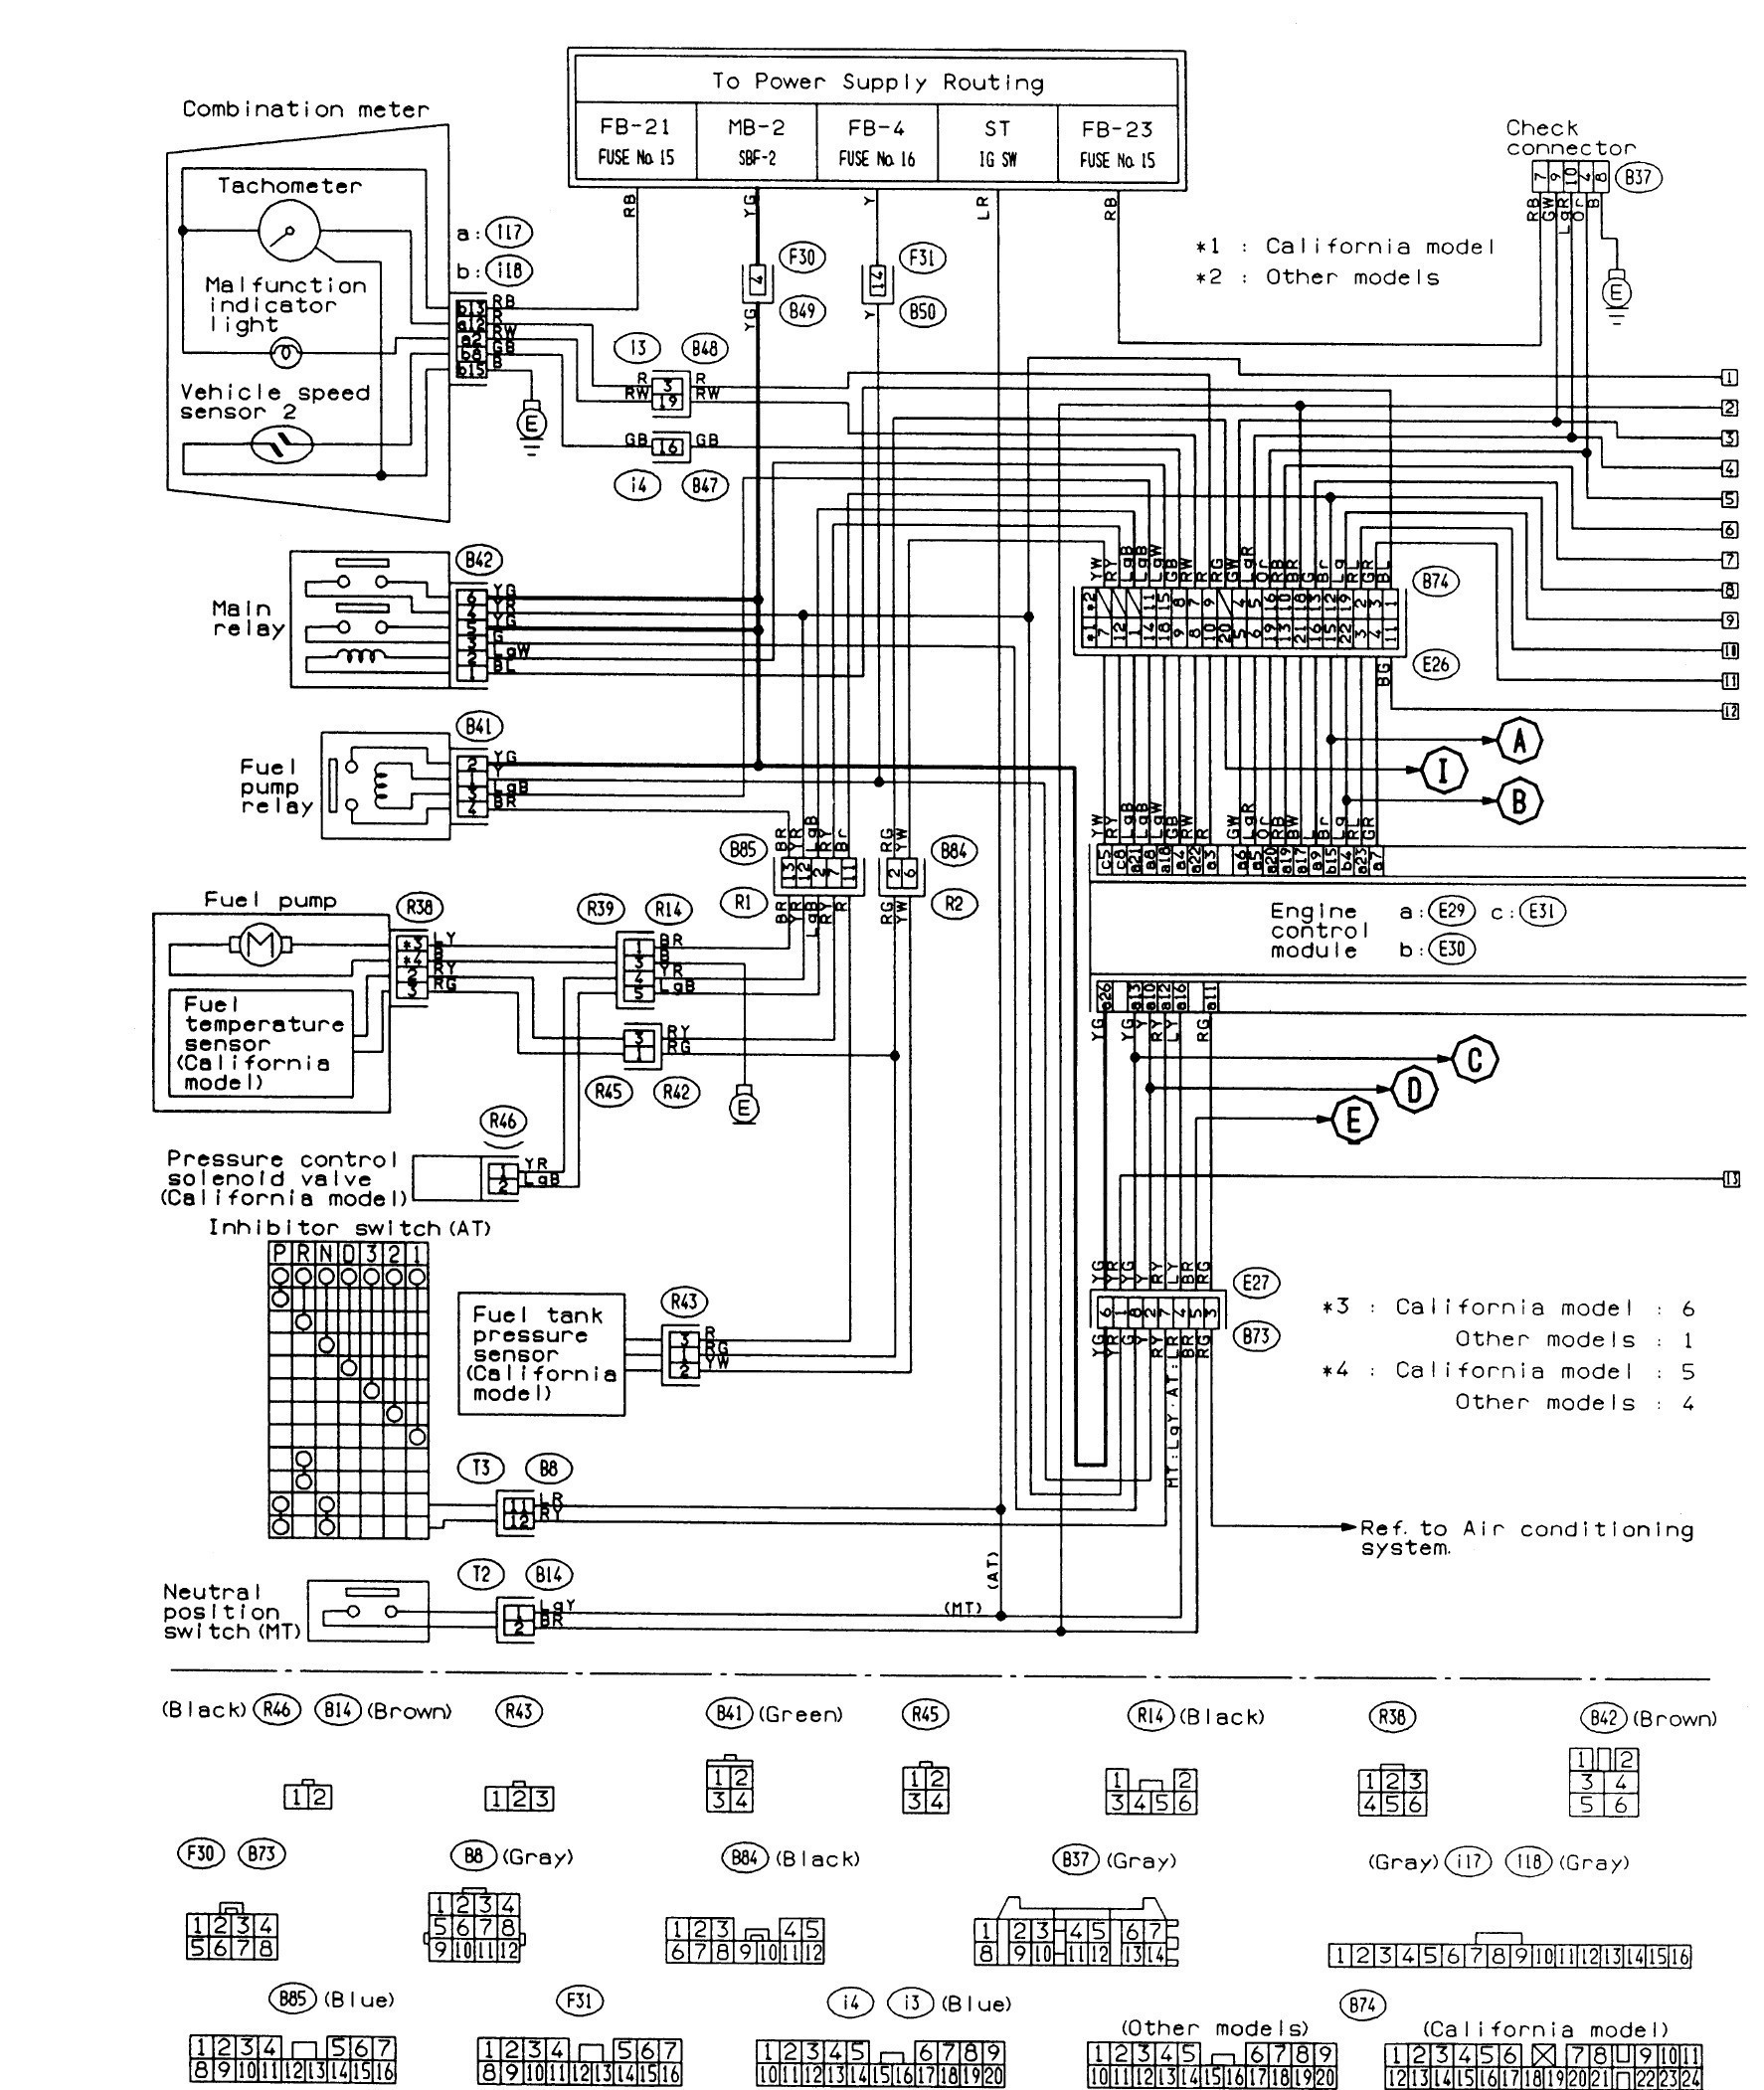 Subaru Impreza Wiring Diagram 2017 Subaru Impreza Radio Wiring Diagram 2010 09 06 Image and Of Subaru Impreza Wiring Diagram